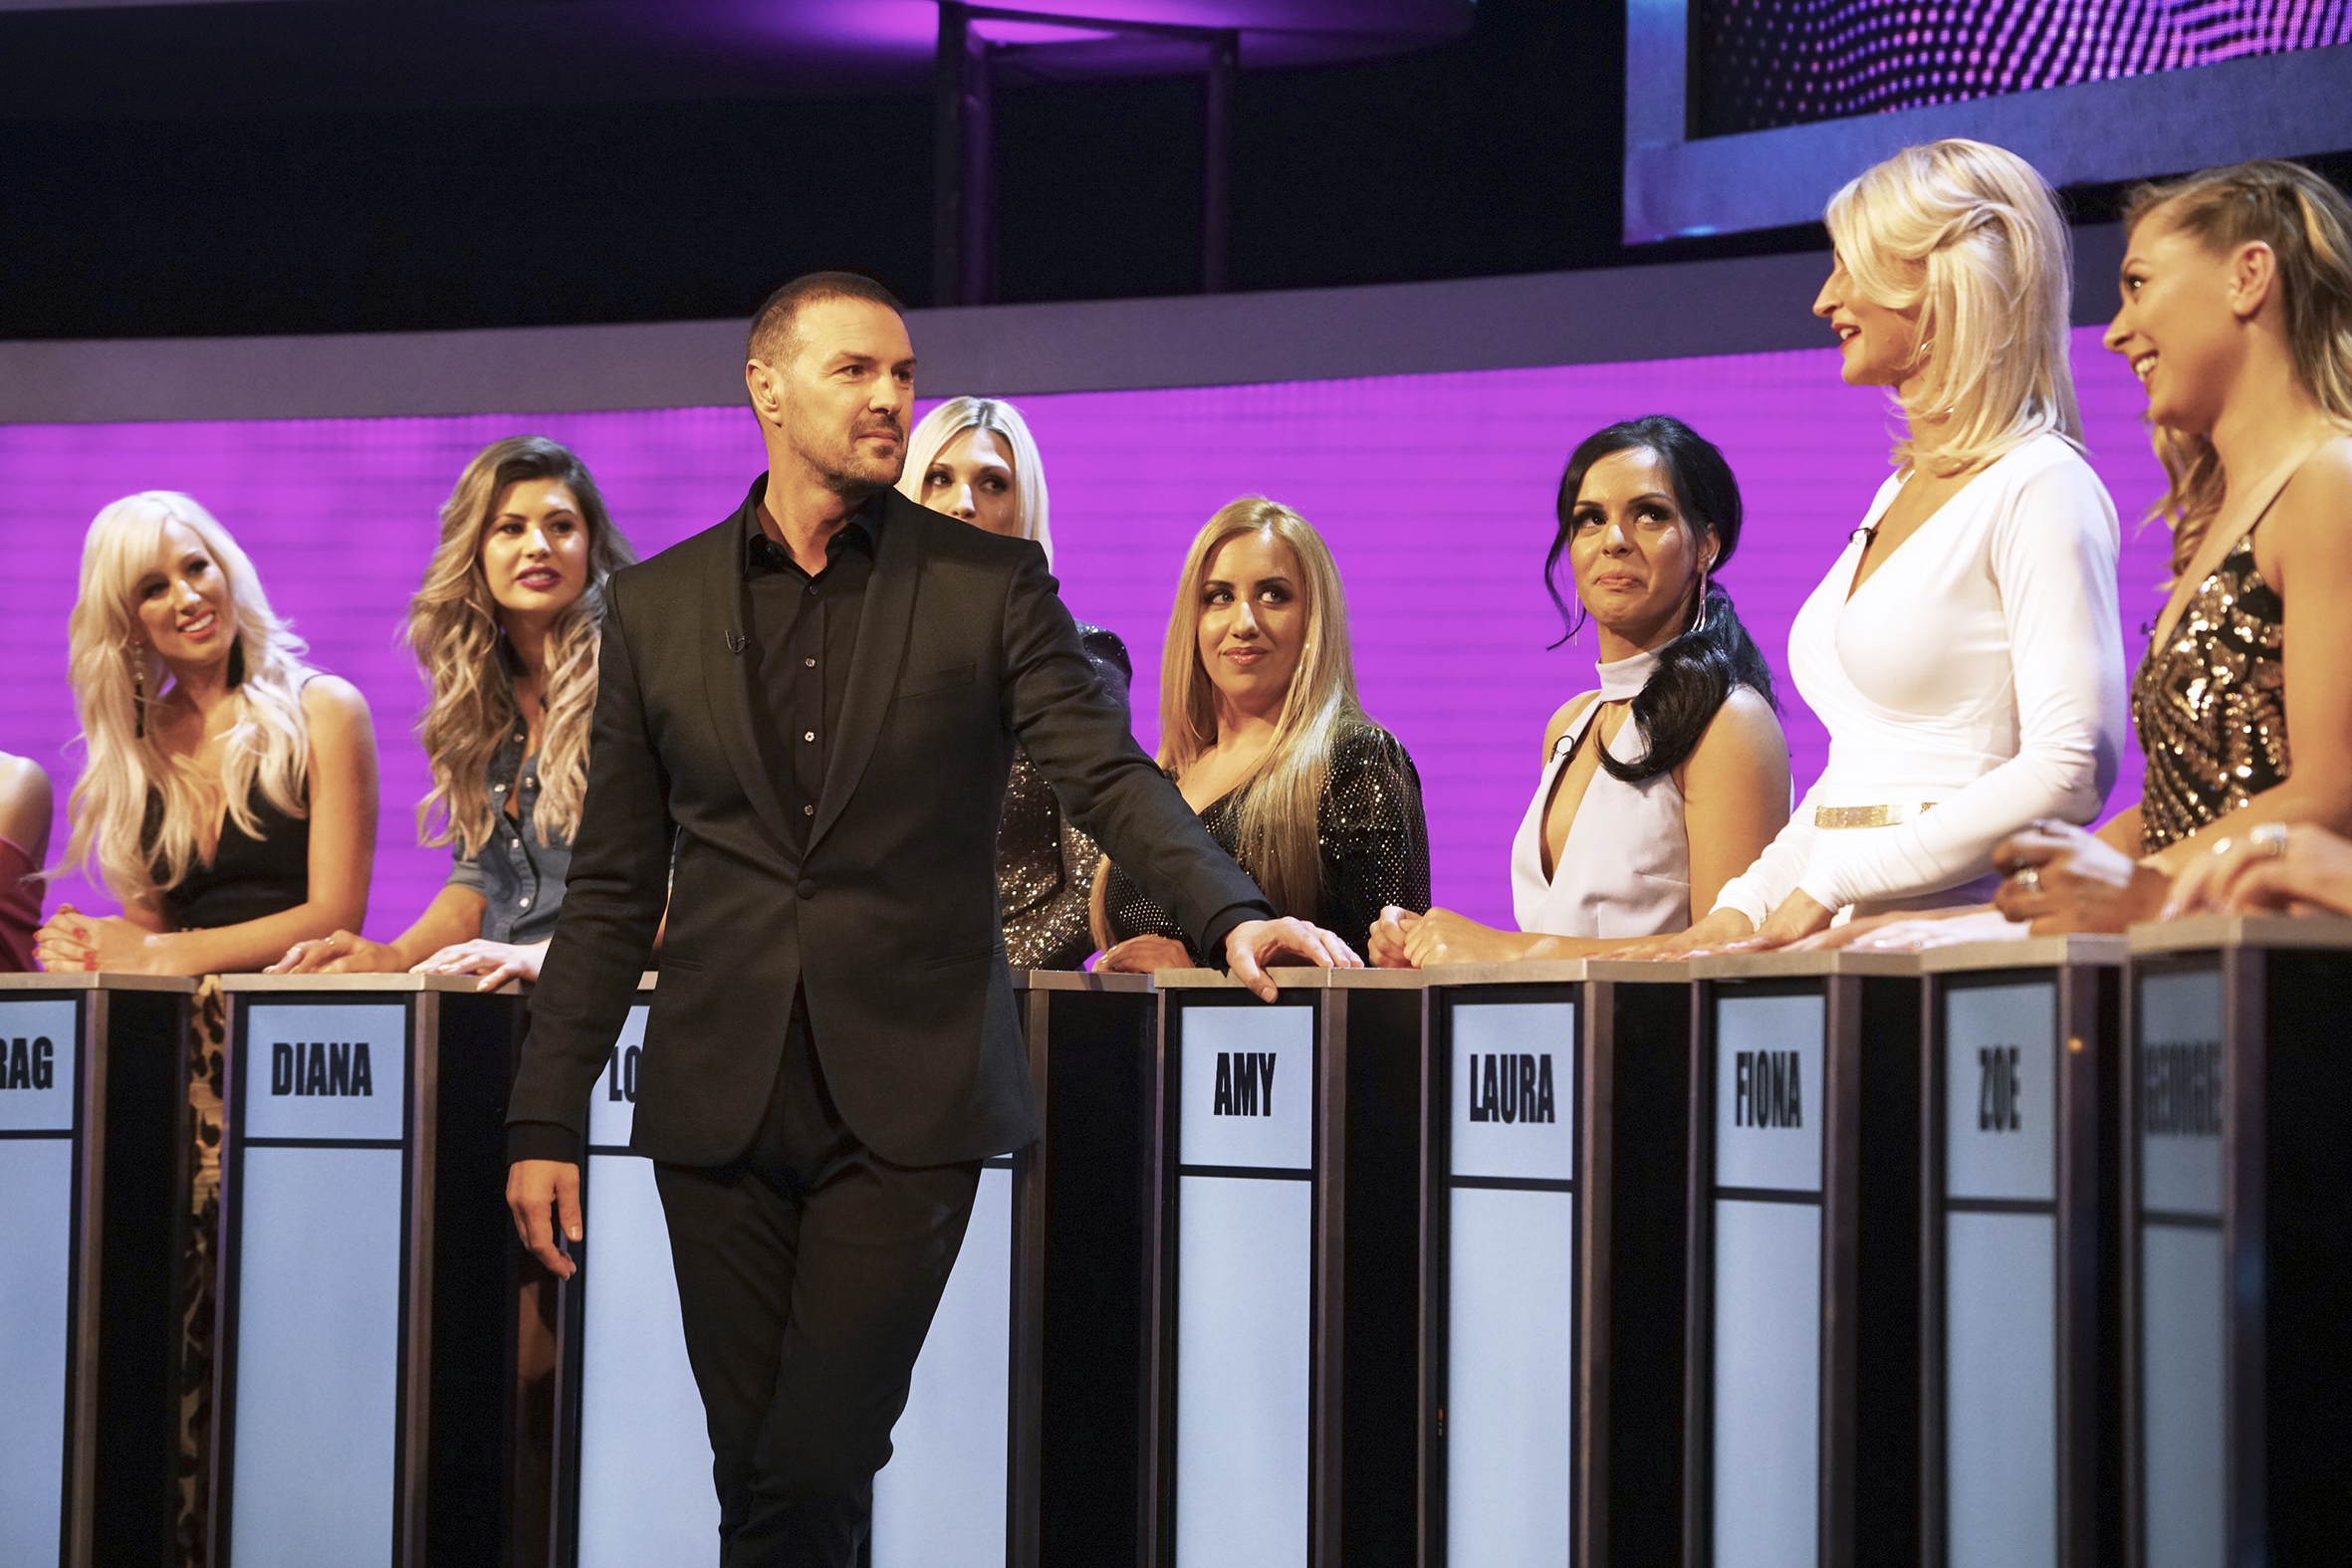 From WhatsApp group chats to fake garlic breath: What we learned from going behind the scenes at Take Me Out